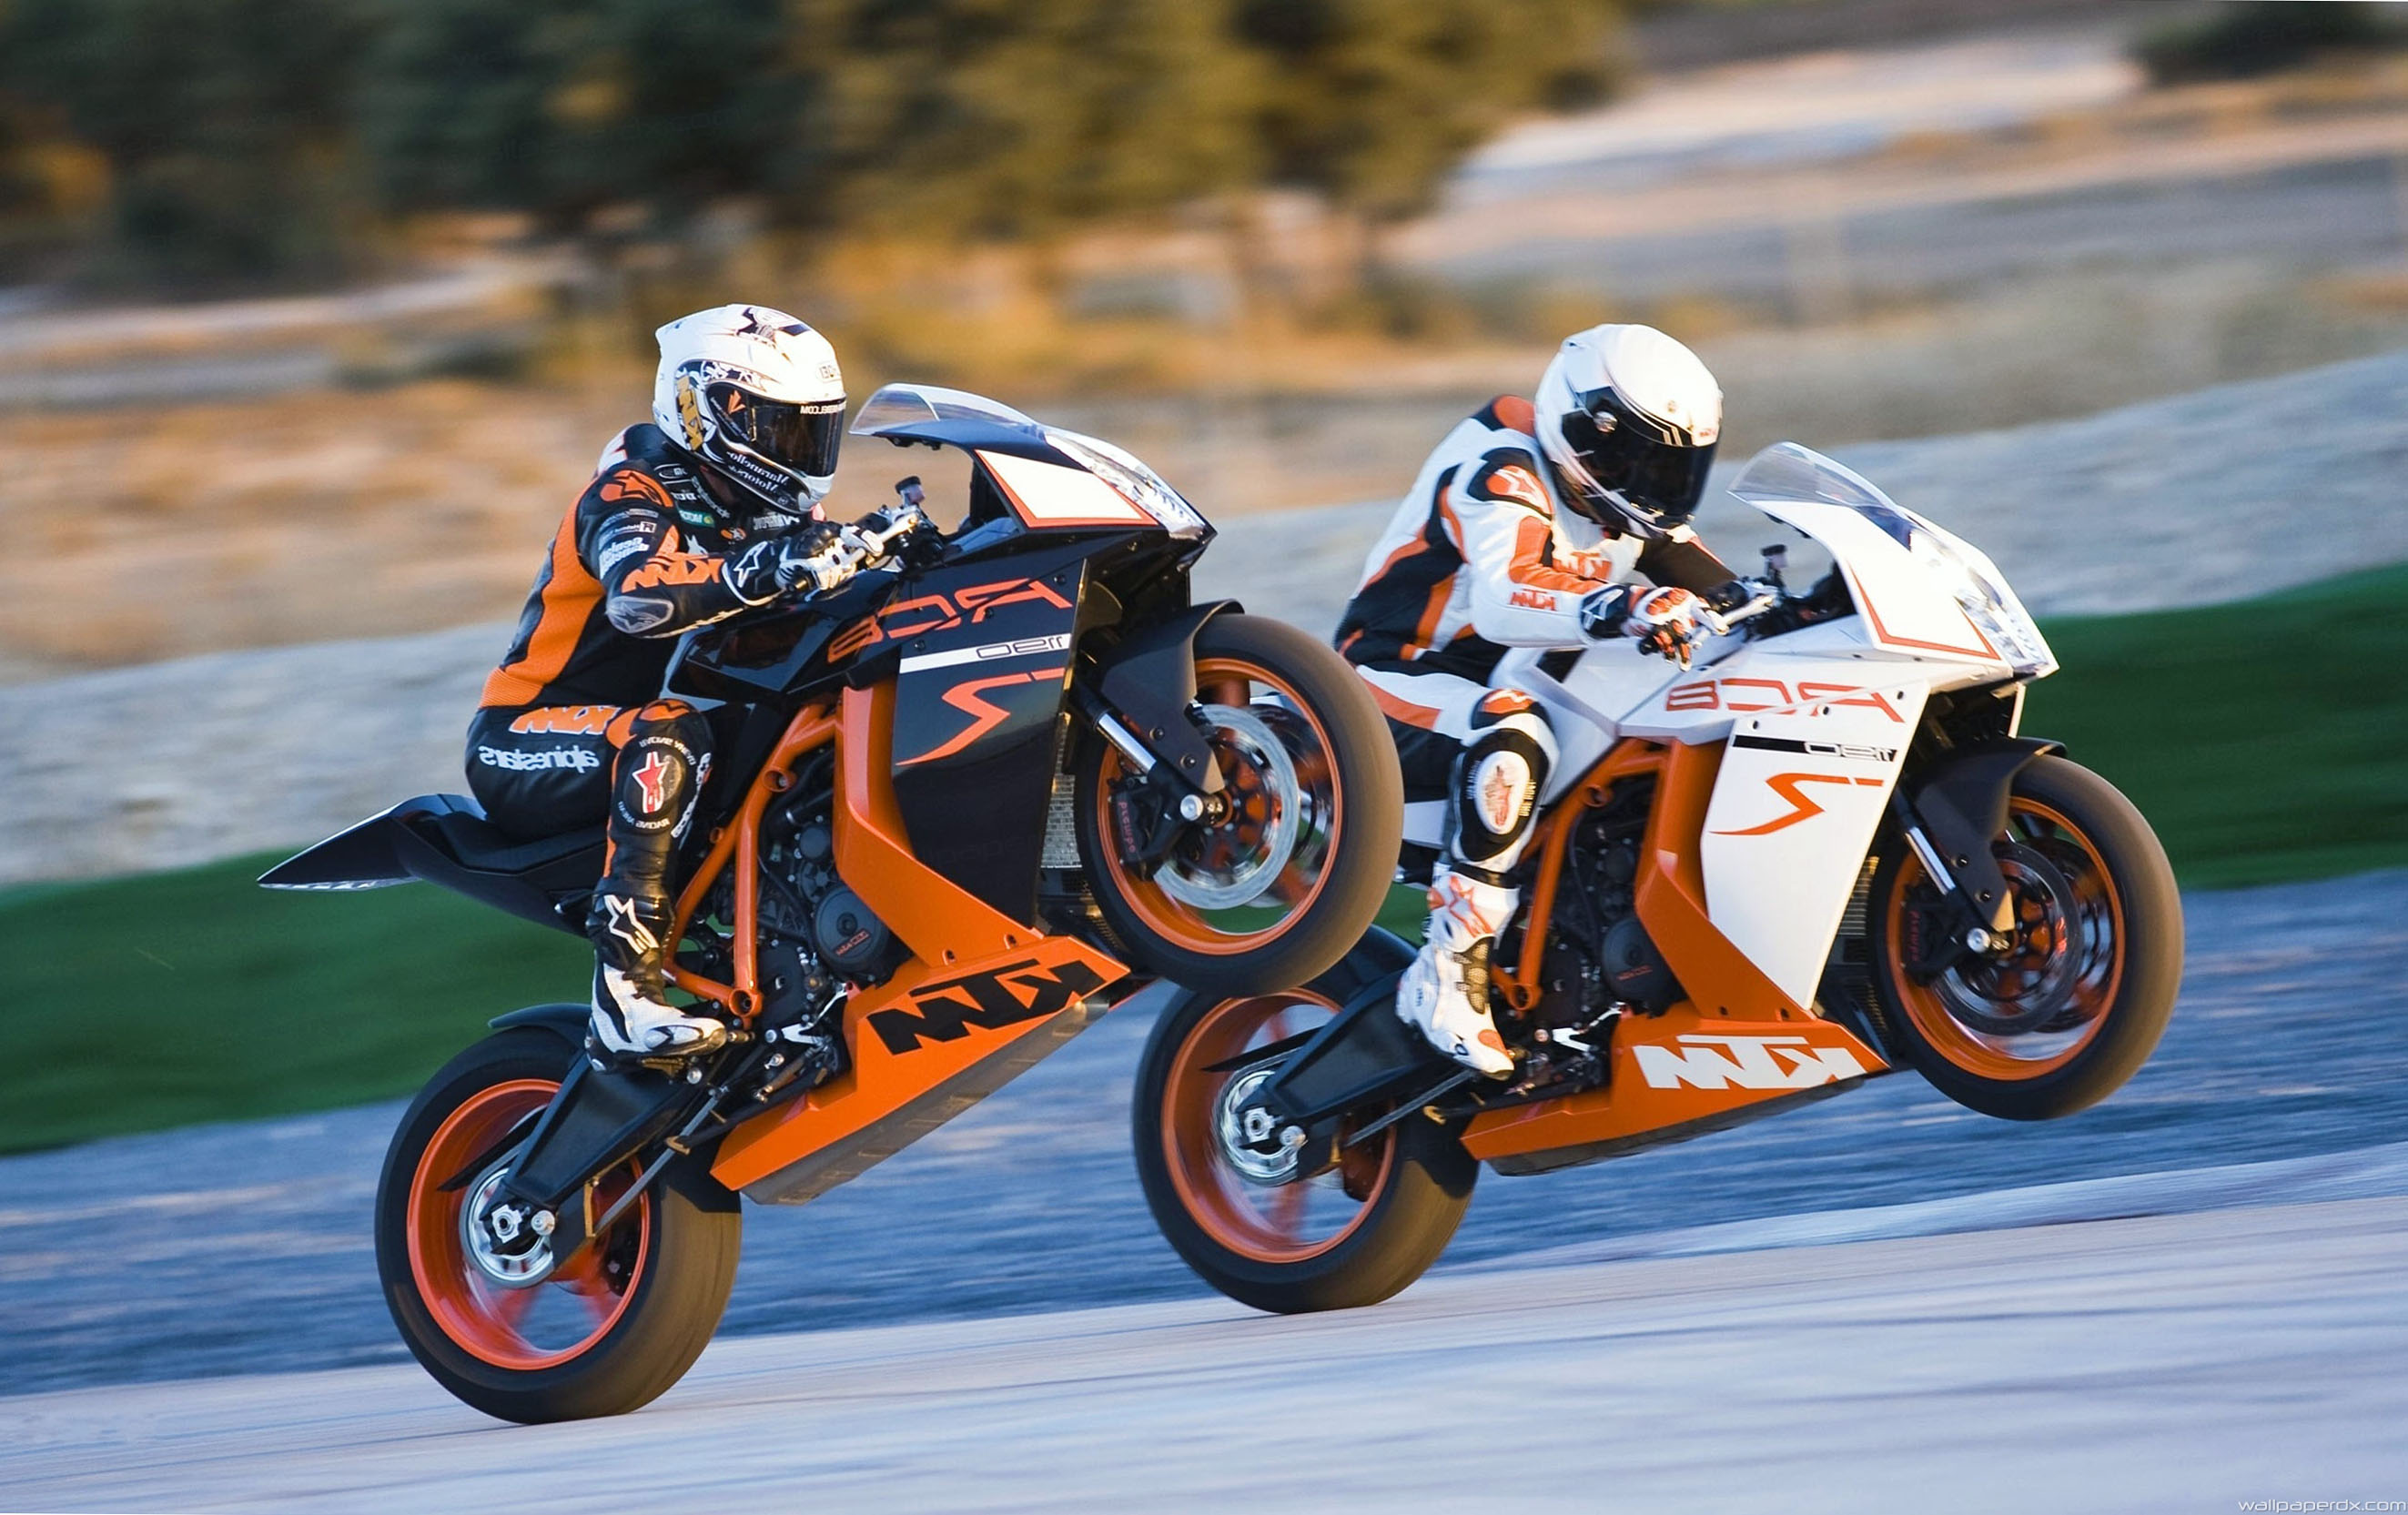 2646x1665 - KTM RC8 Wallpapers 1